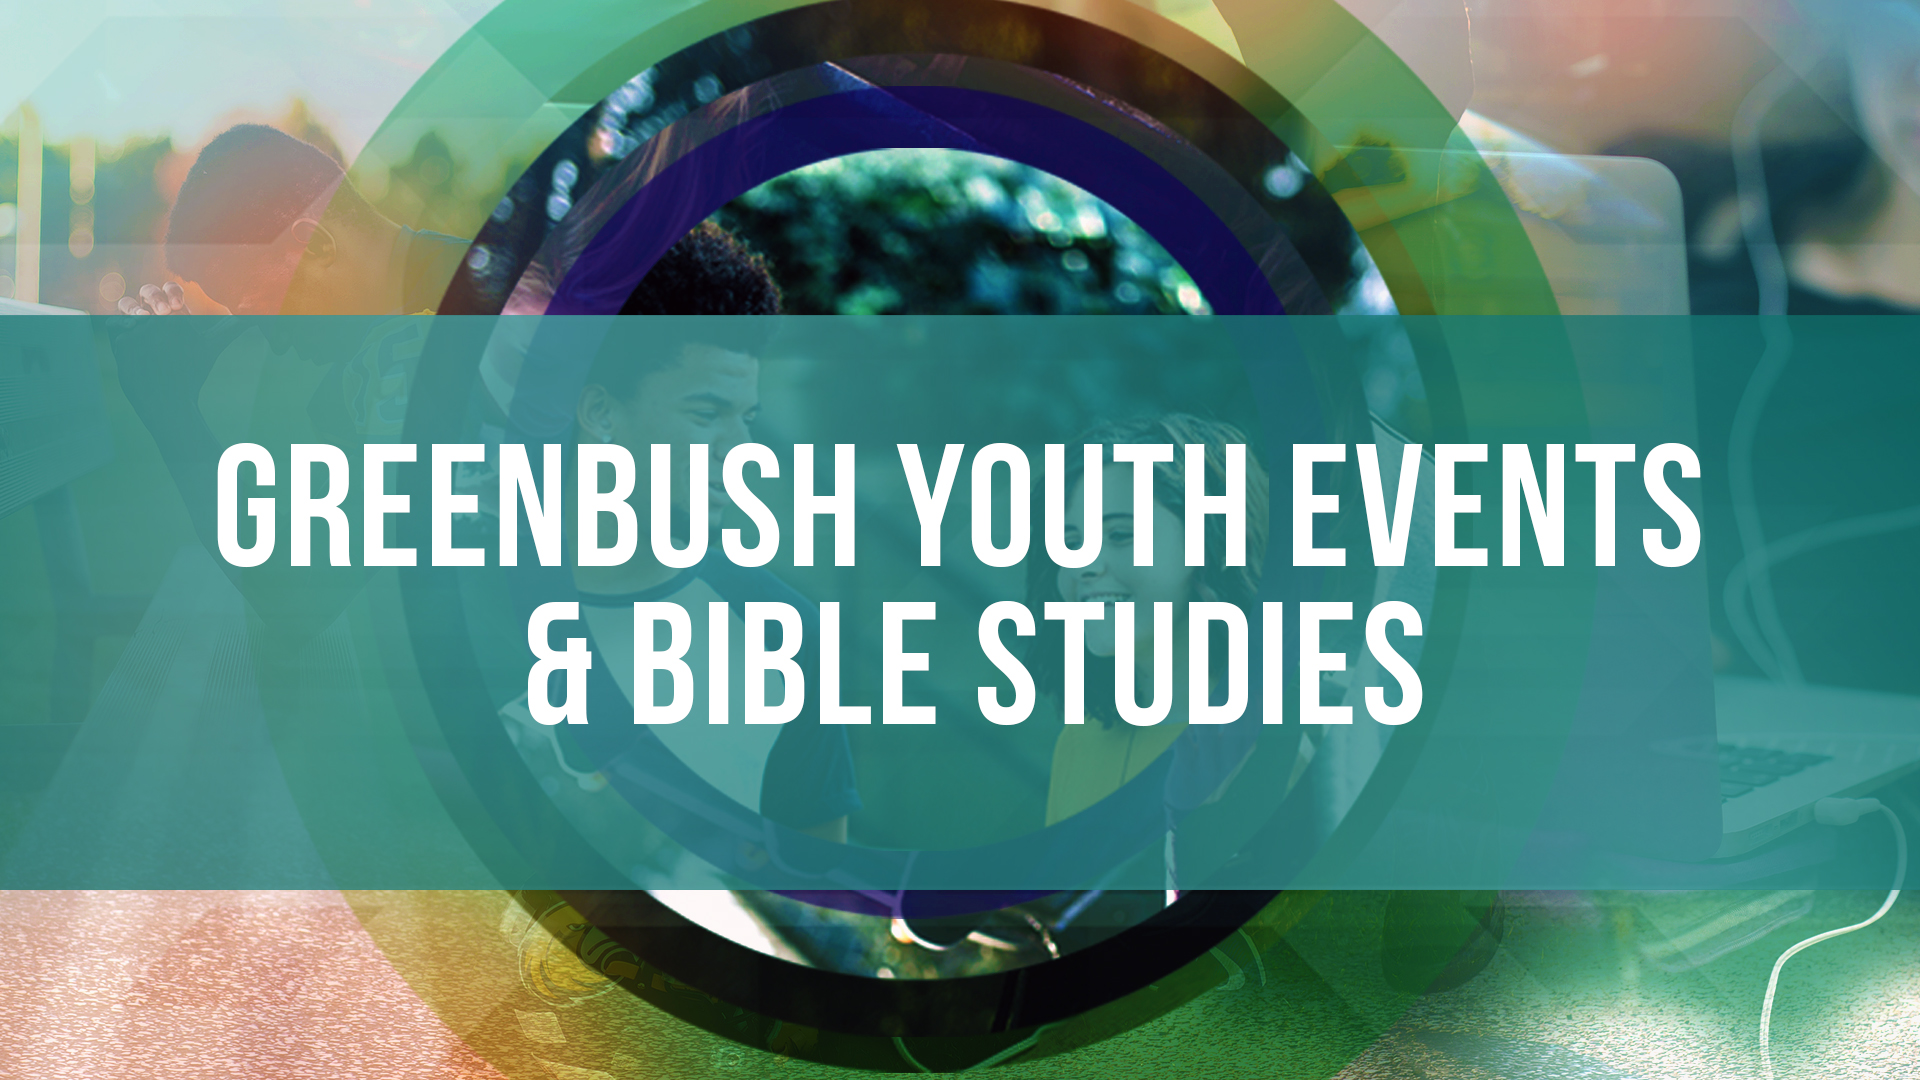 Greenbush Youth Events/Bible Studies